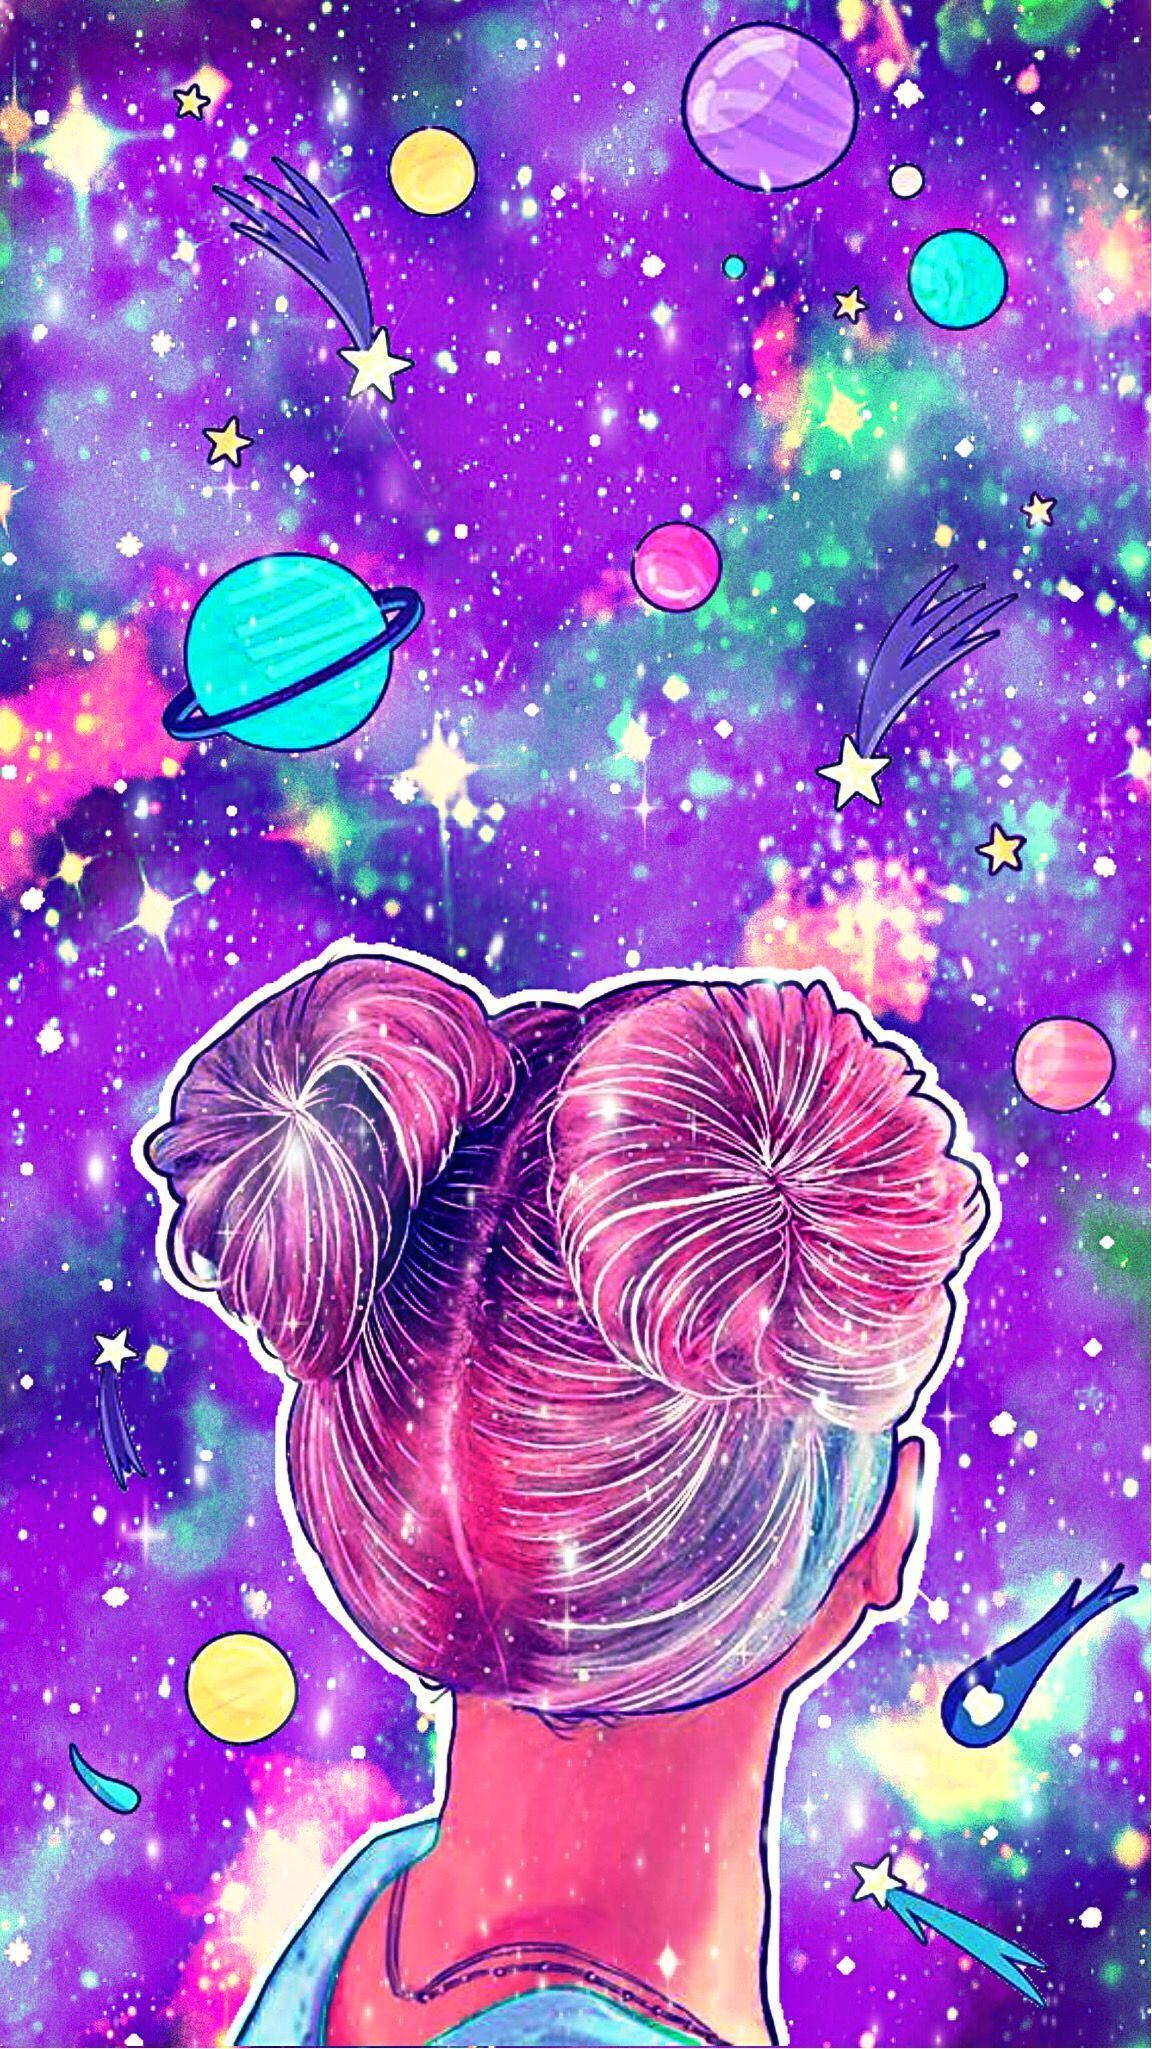 Girl Planet Galaxy #androidwallpaper #iphonewallpaper #glitter #sparkle #galaxy #space #planets - Telescope